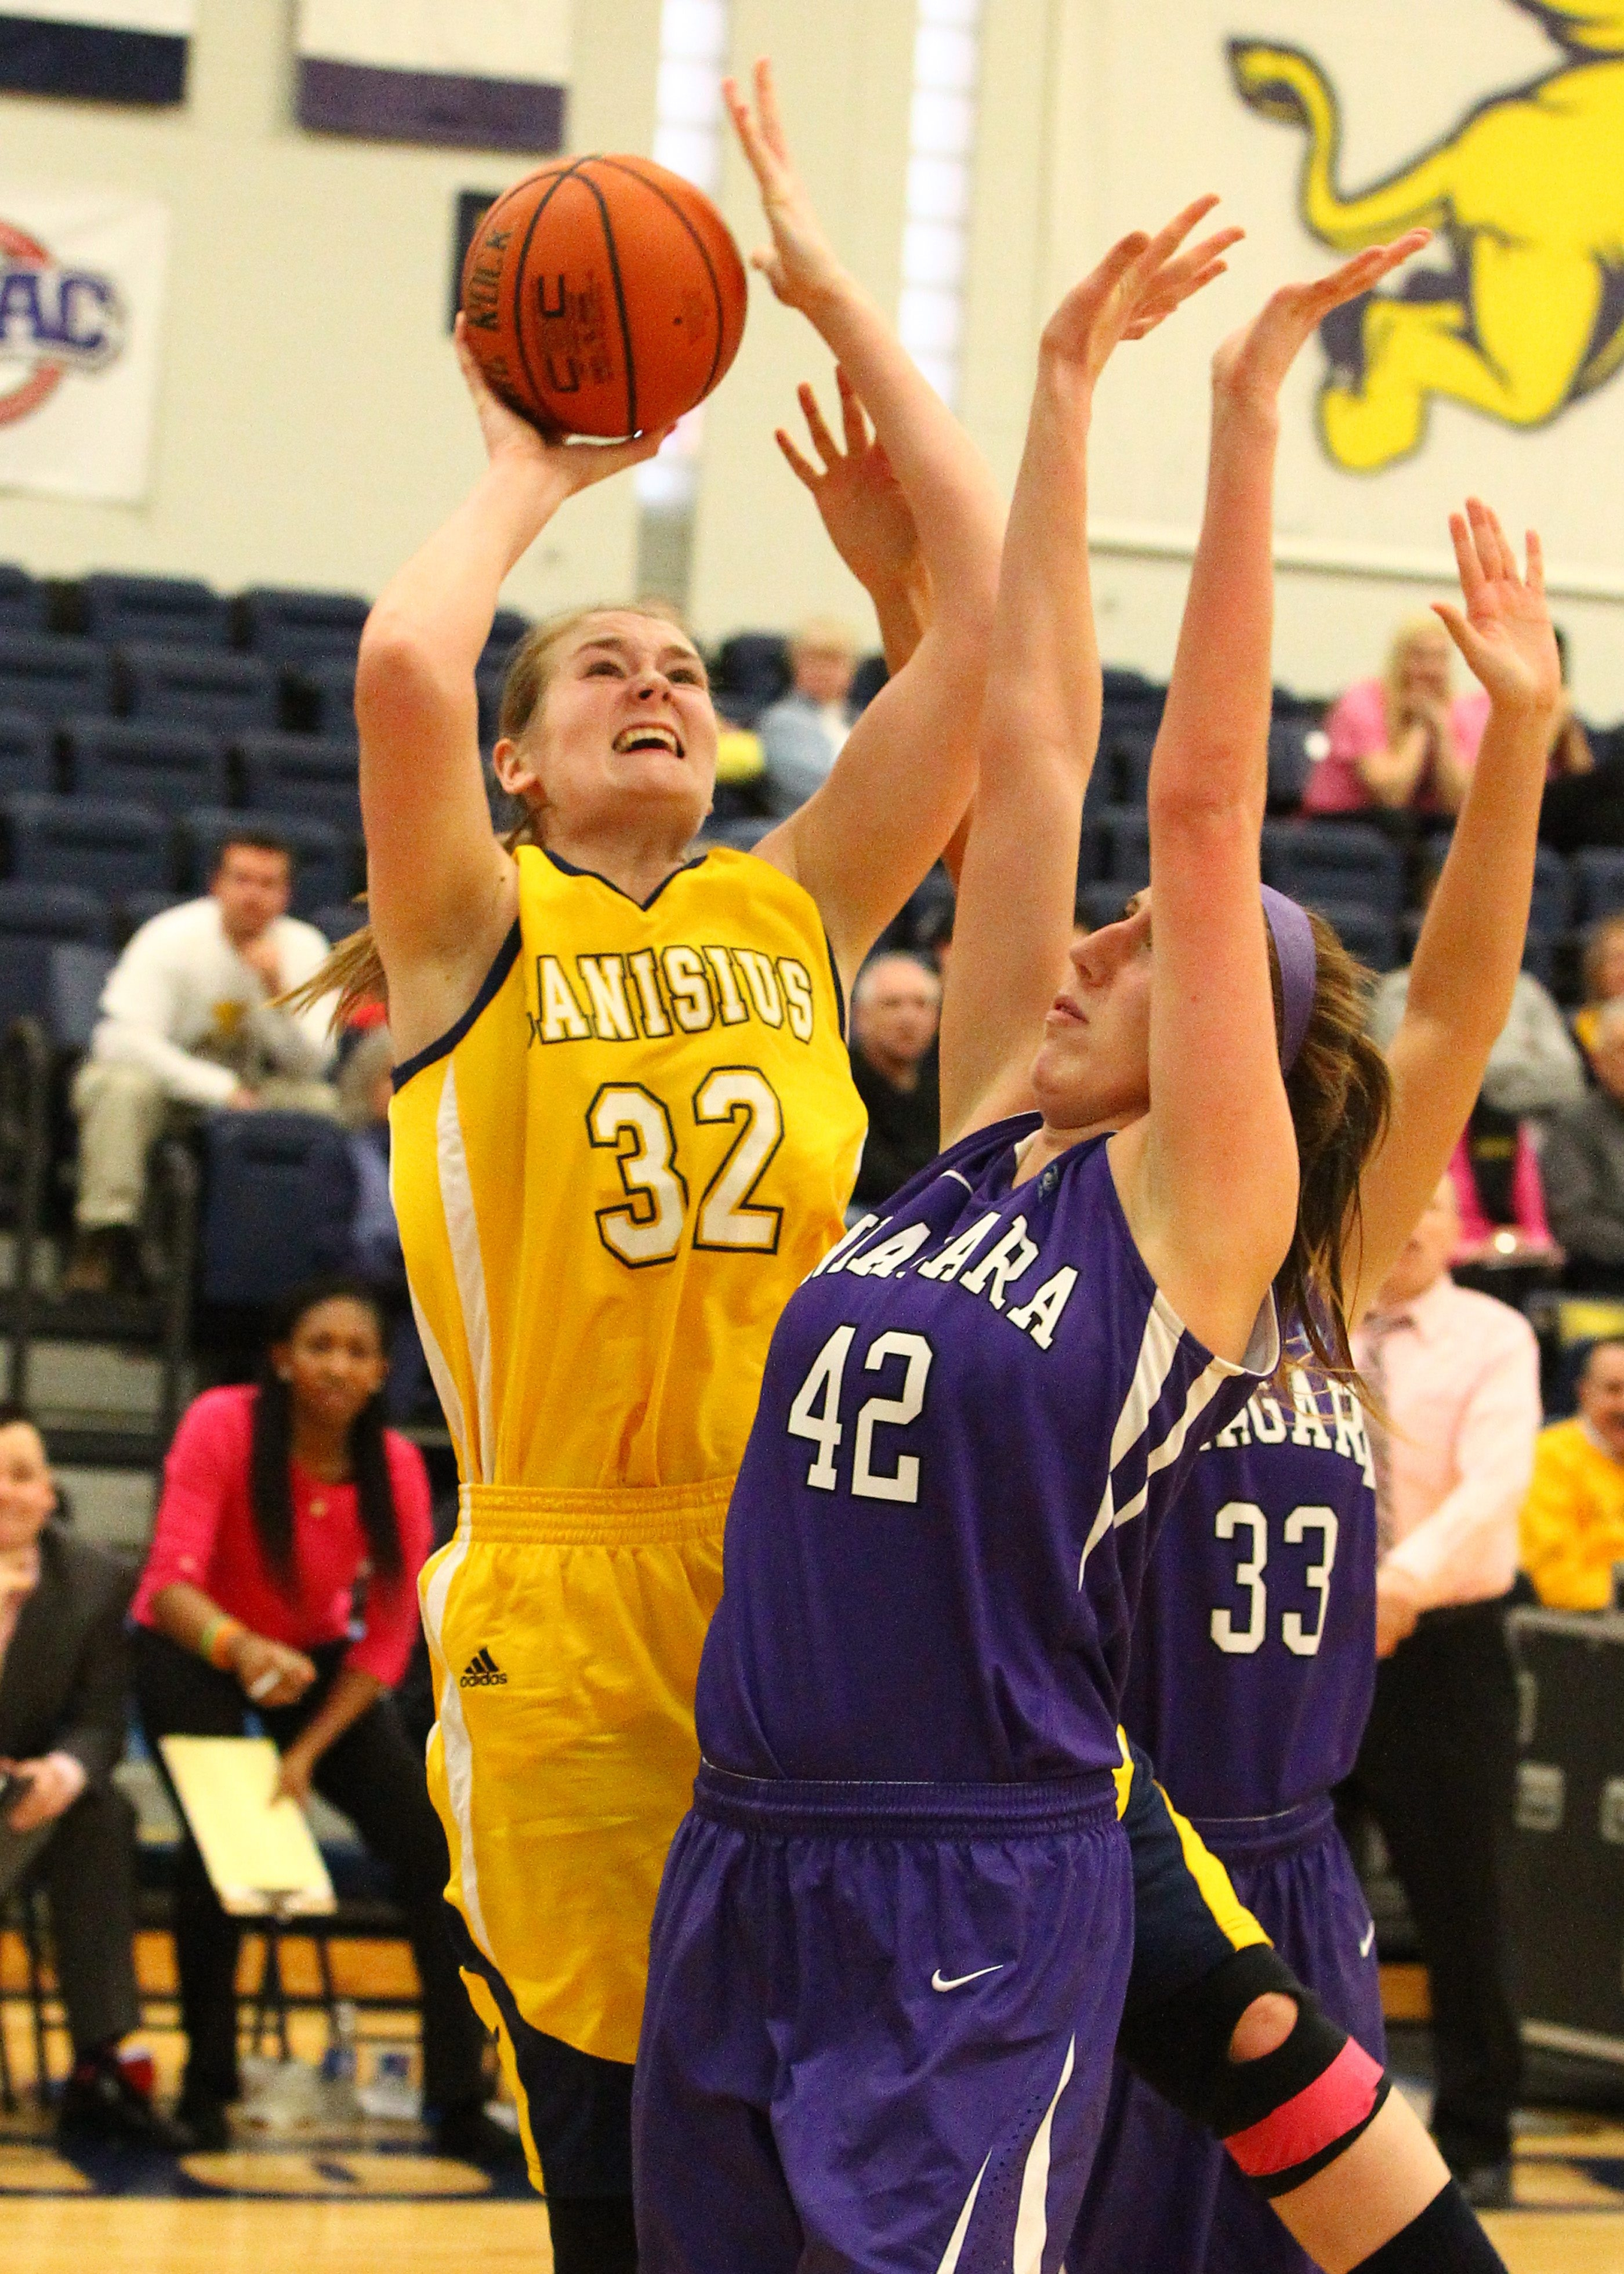 Canisius forward Jen Lennox has position on Niagara center Sam Lapszynski during the second half at the Koessler Athletic Center.